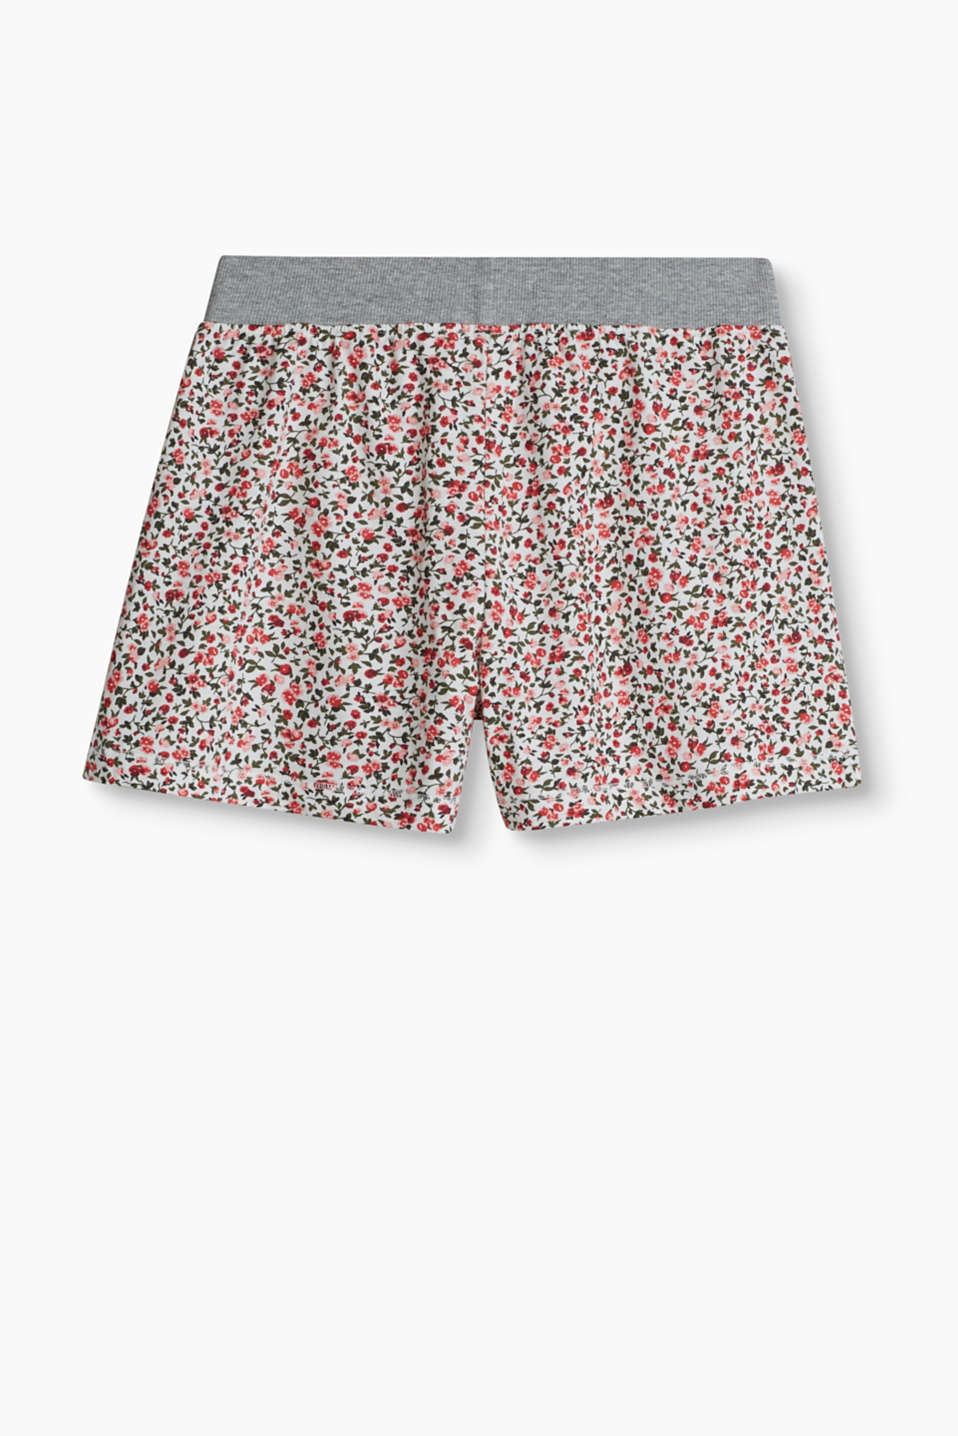 These soft cotton shorts with a pretty floral print are very comfortable and pretty.